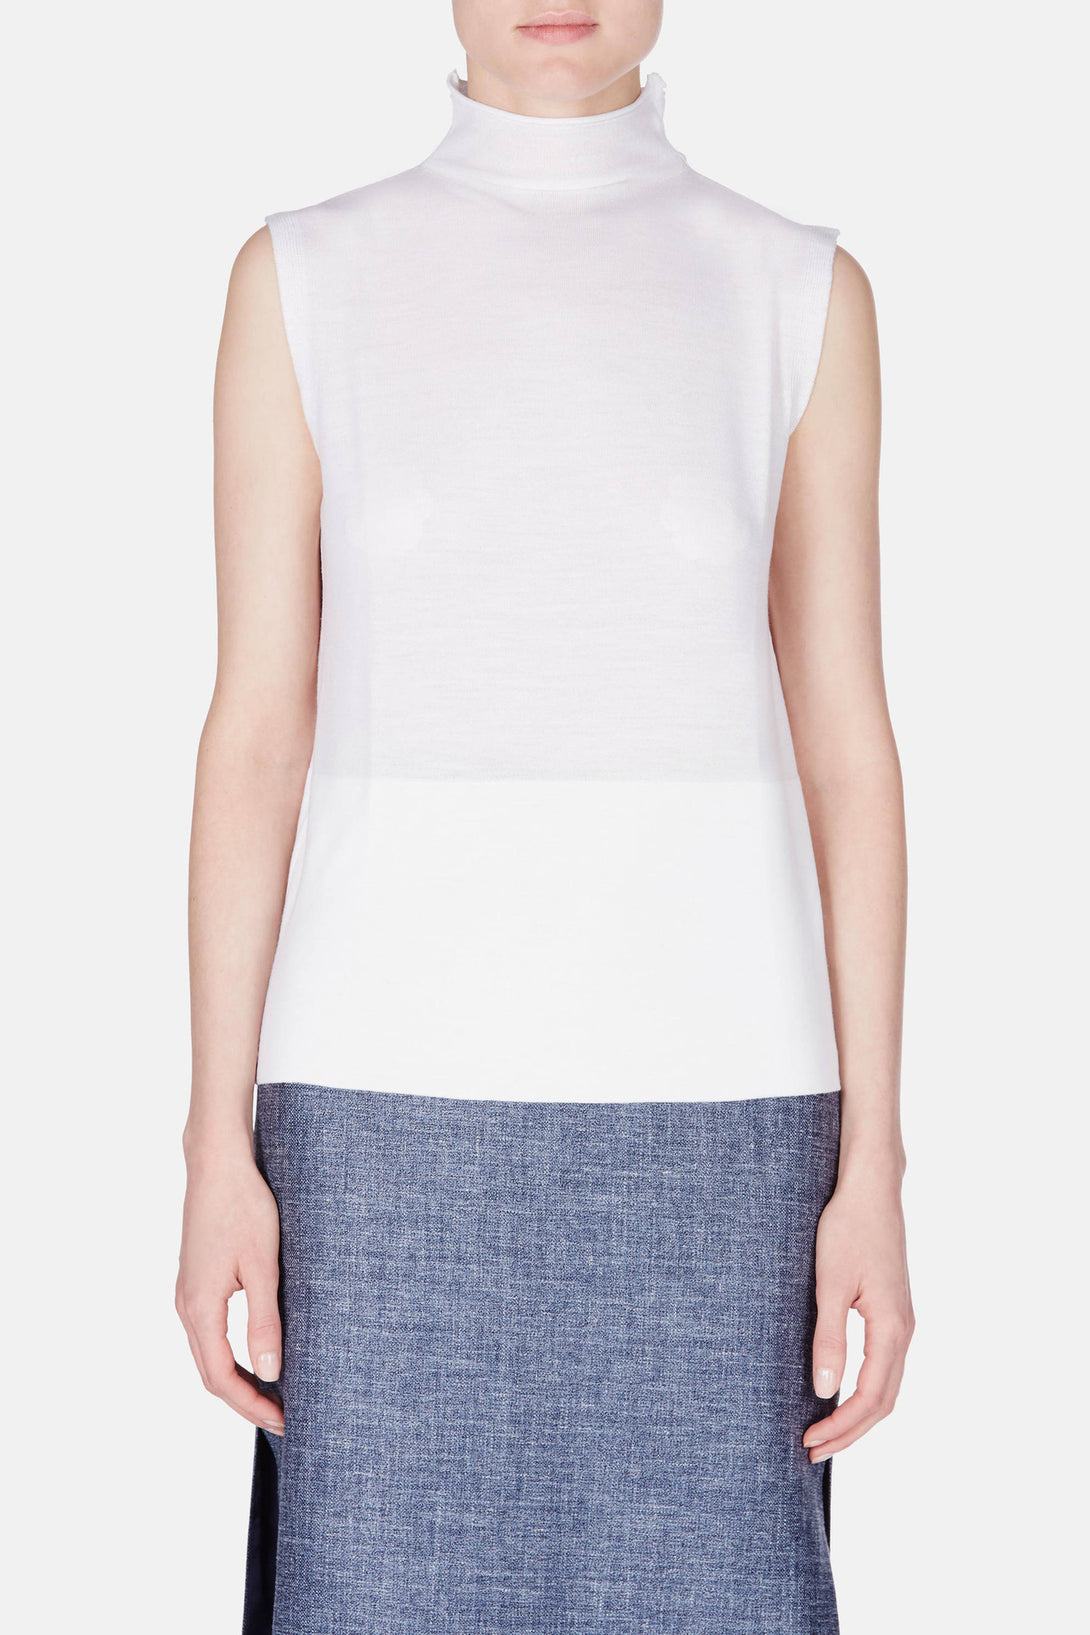 Extra Light Sleeveless Turtleneck - White